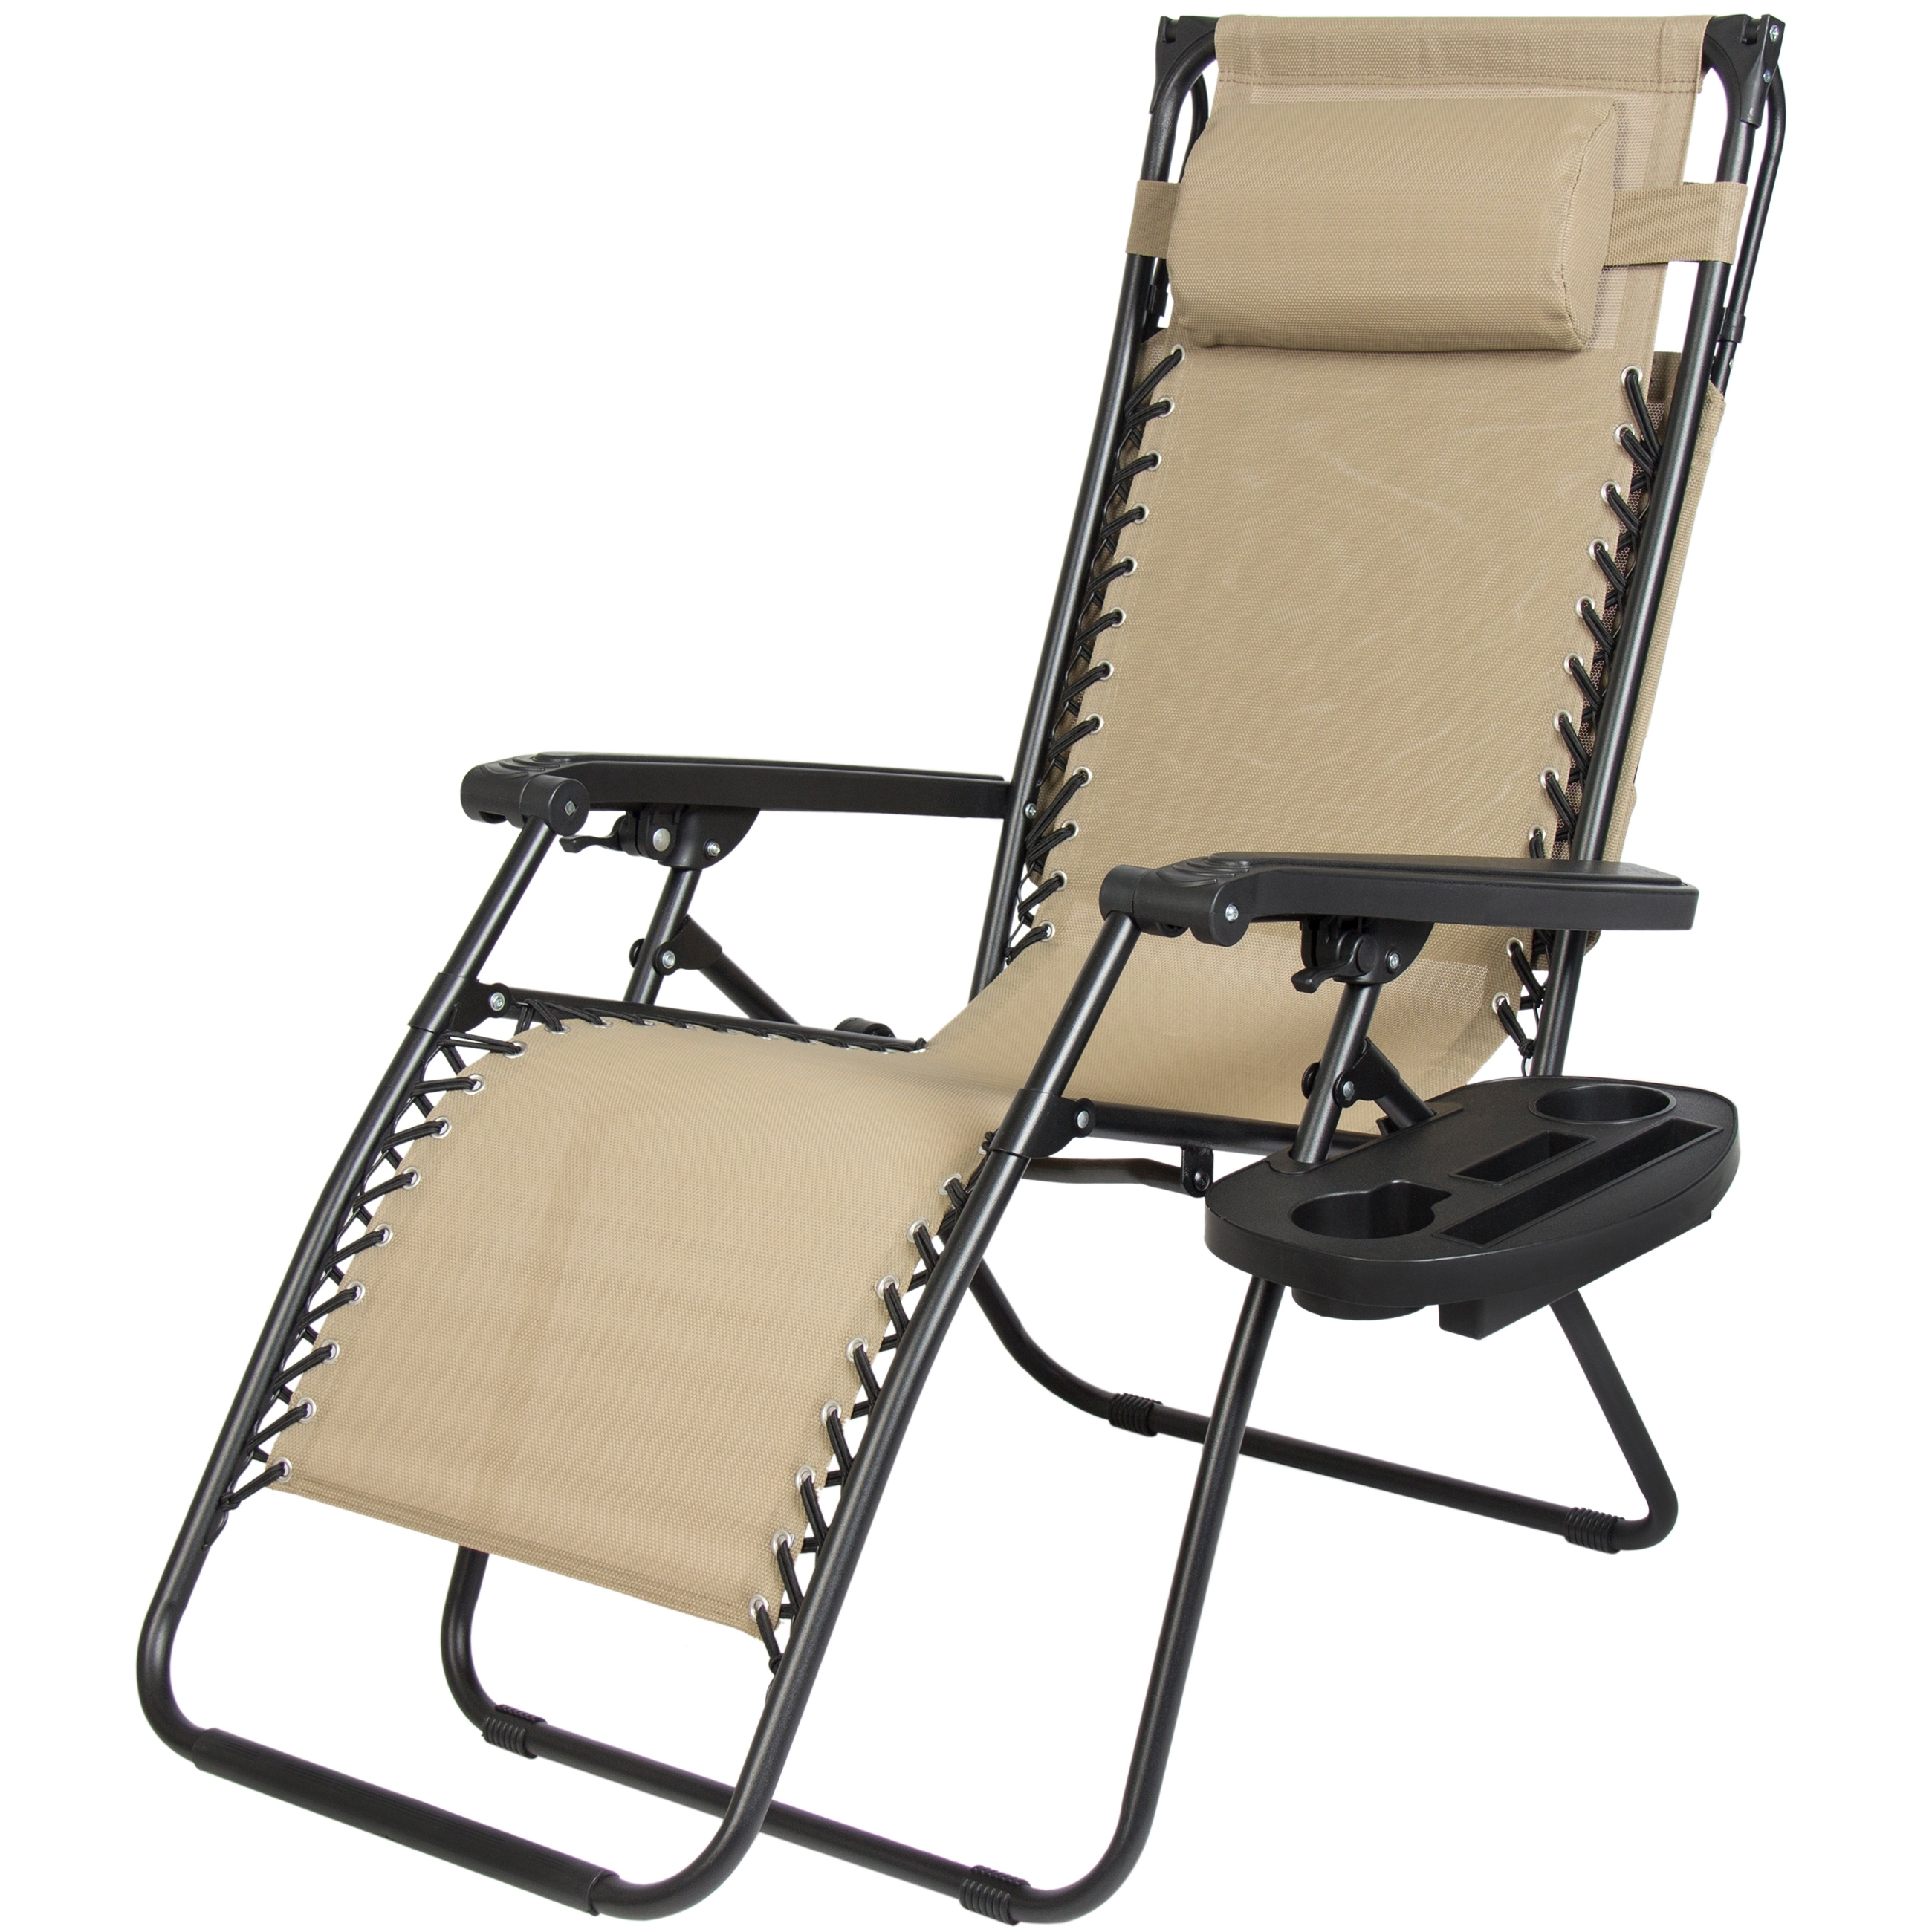 Most Recently Released Lounge Chair : Outdoor Lounge Chairs With Wheels Patio Furniture In Folding Chaise Lounge Lawn Chairs (View 7 of 15)